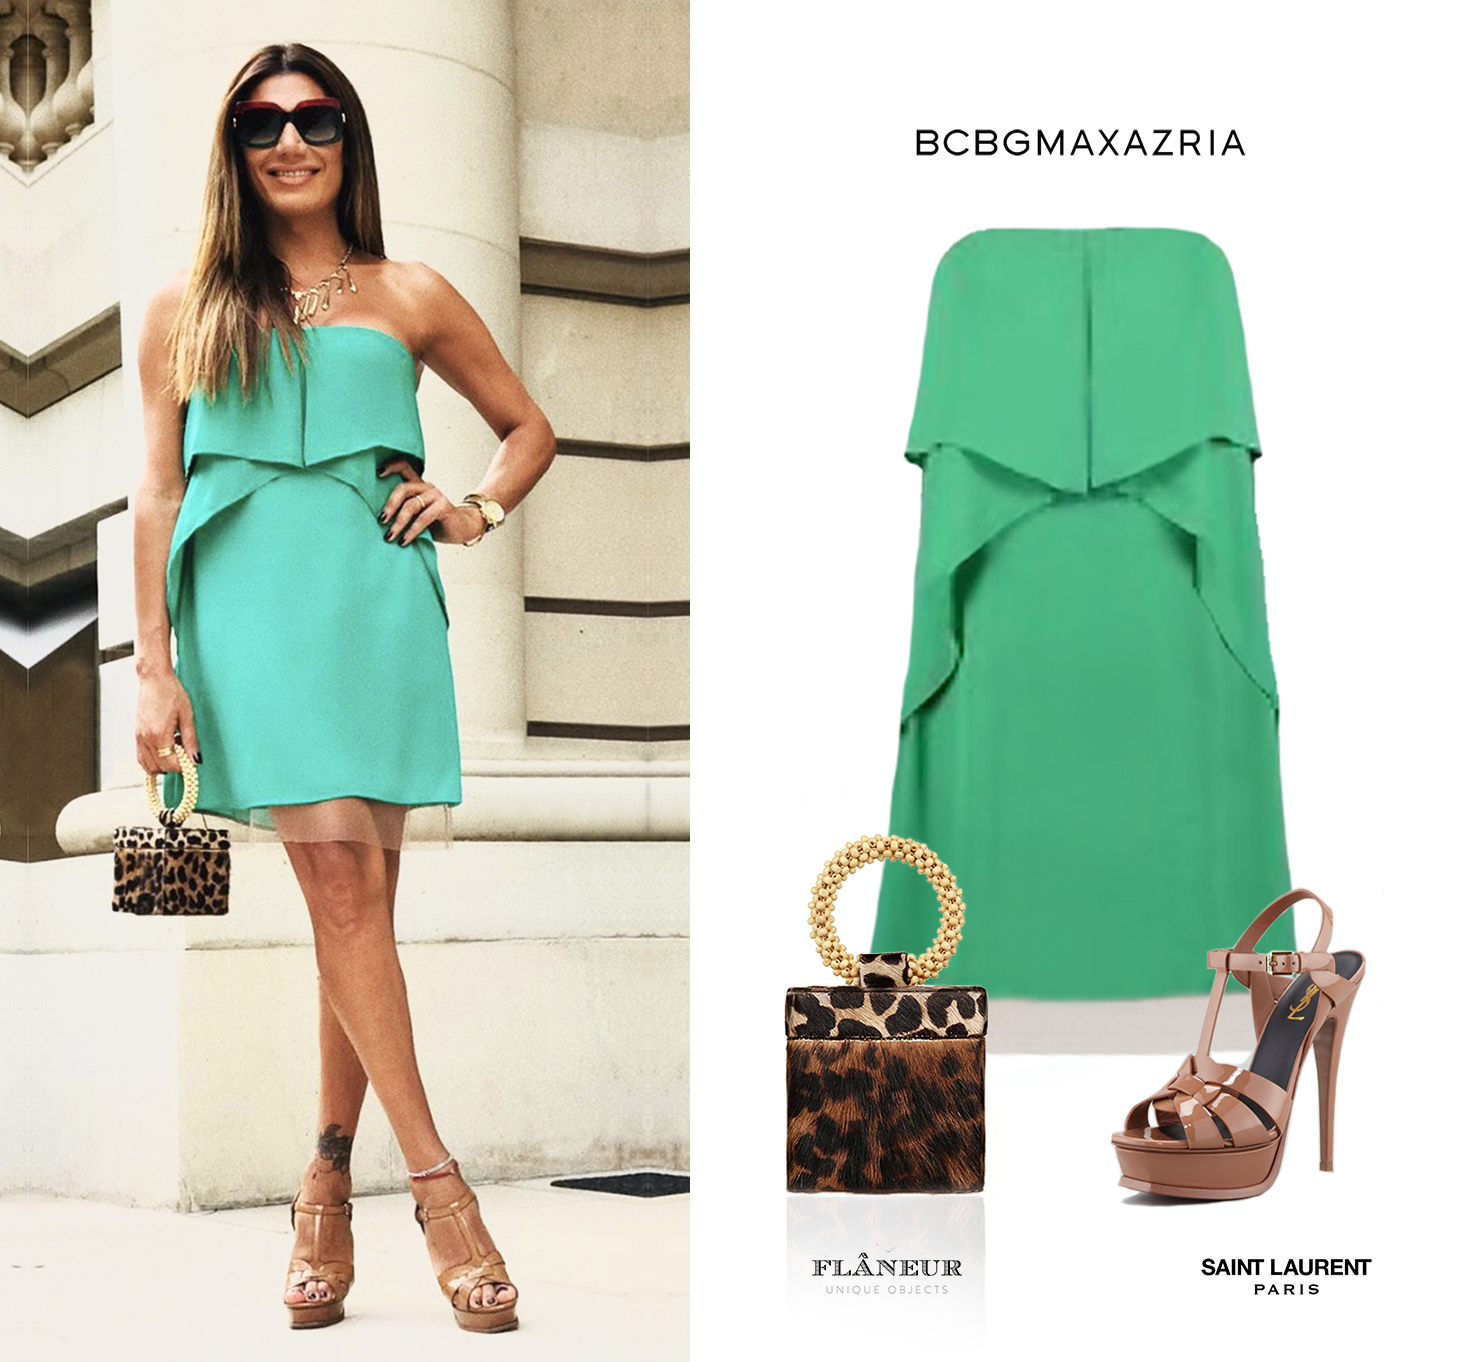 Flor_Florencia_de_la_ve_v_Vestido_Fei_Fei_Green_BCBG_Max_Azria_Strapless_Dress_YSL_Saint_Laurent_Tribute_Sandals_Brown_Nude_Caramel_Flaneur_Leopard_Print_Clutch_Bag_Box.jpg